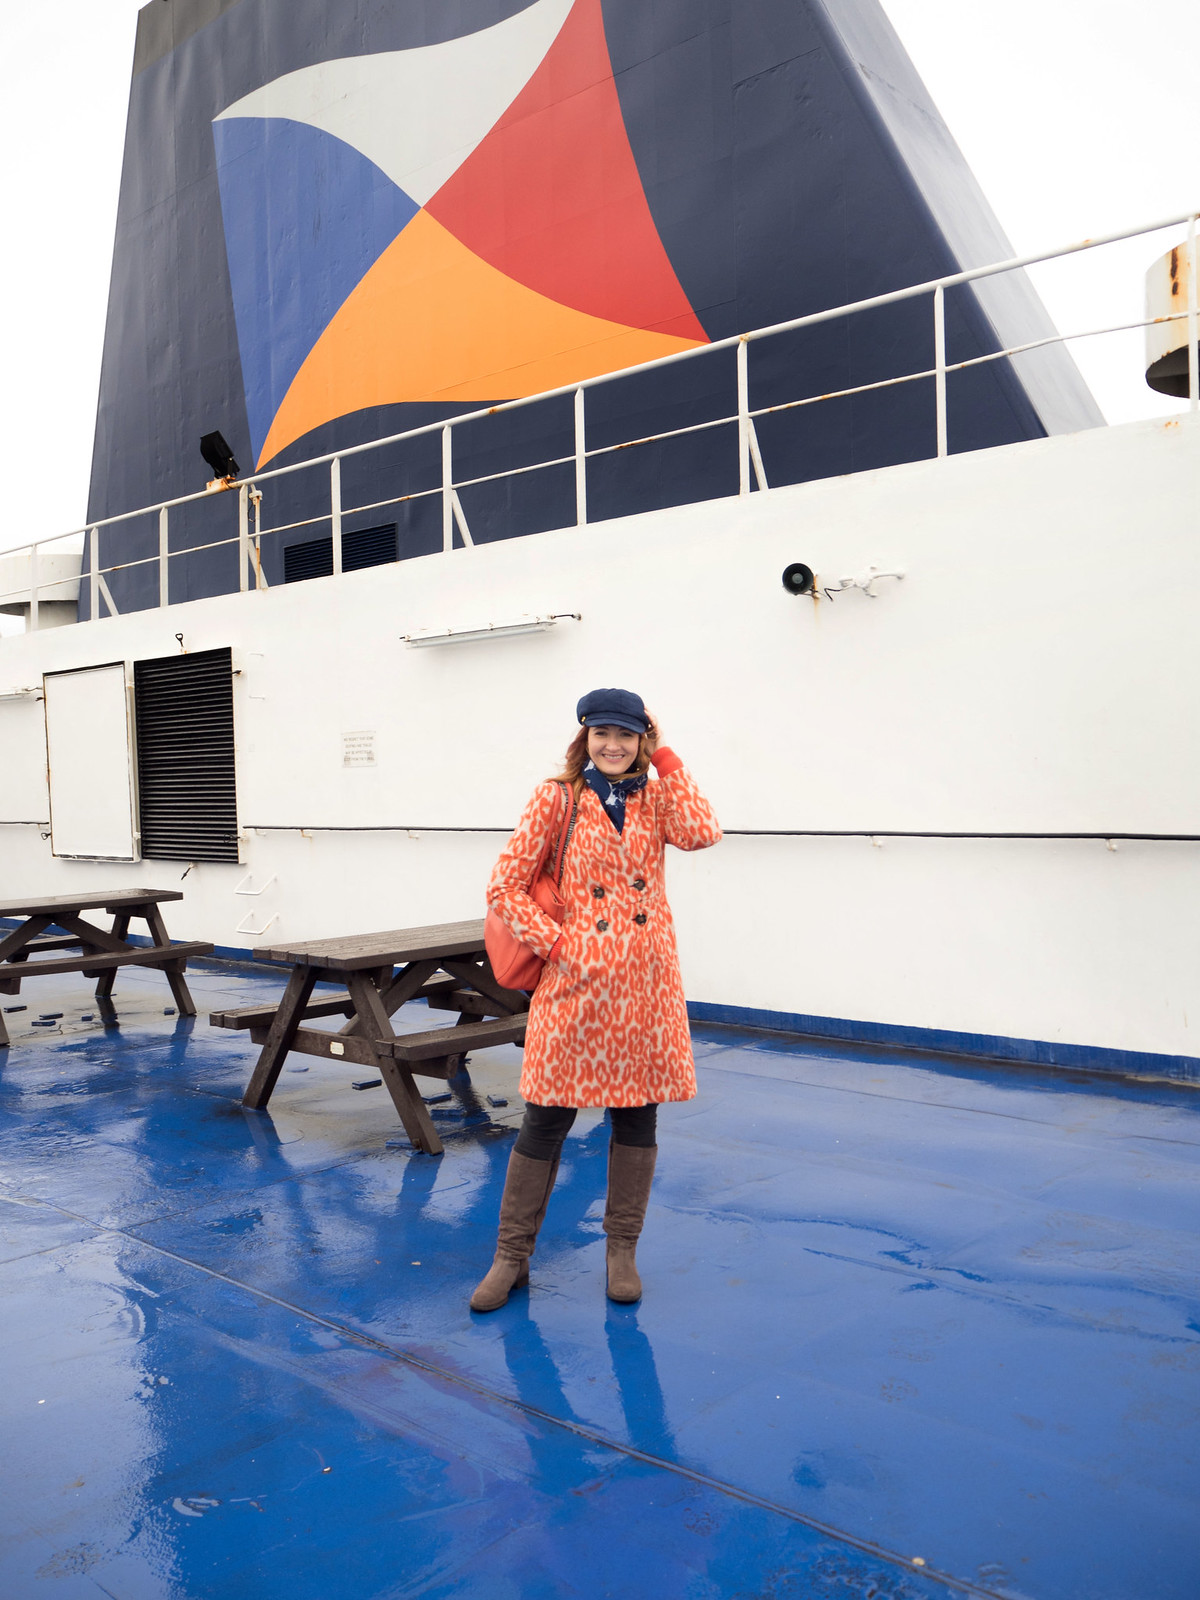 Dover to Calais ferry trip, P&O Ferries | Not Dressed As Lamb, over 40 fashion & lifestyle